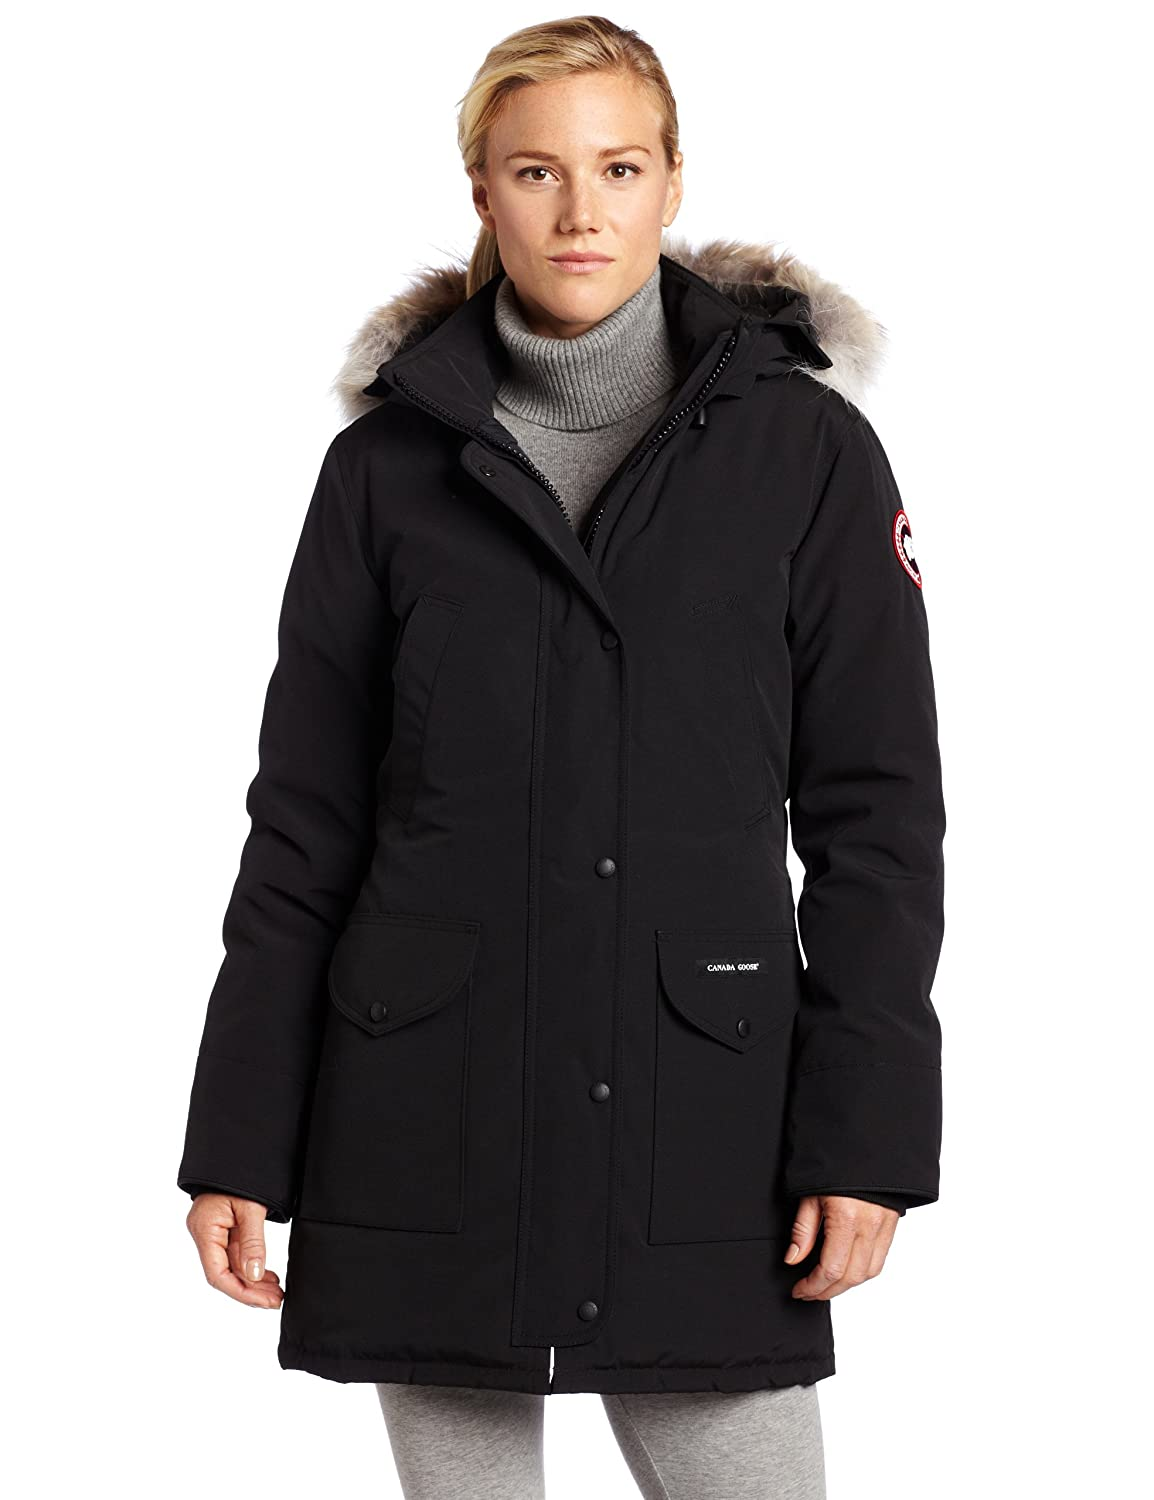 Amazon.com: Canada Goose Women's Trillium Parka: Sports & Outdoors